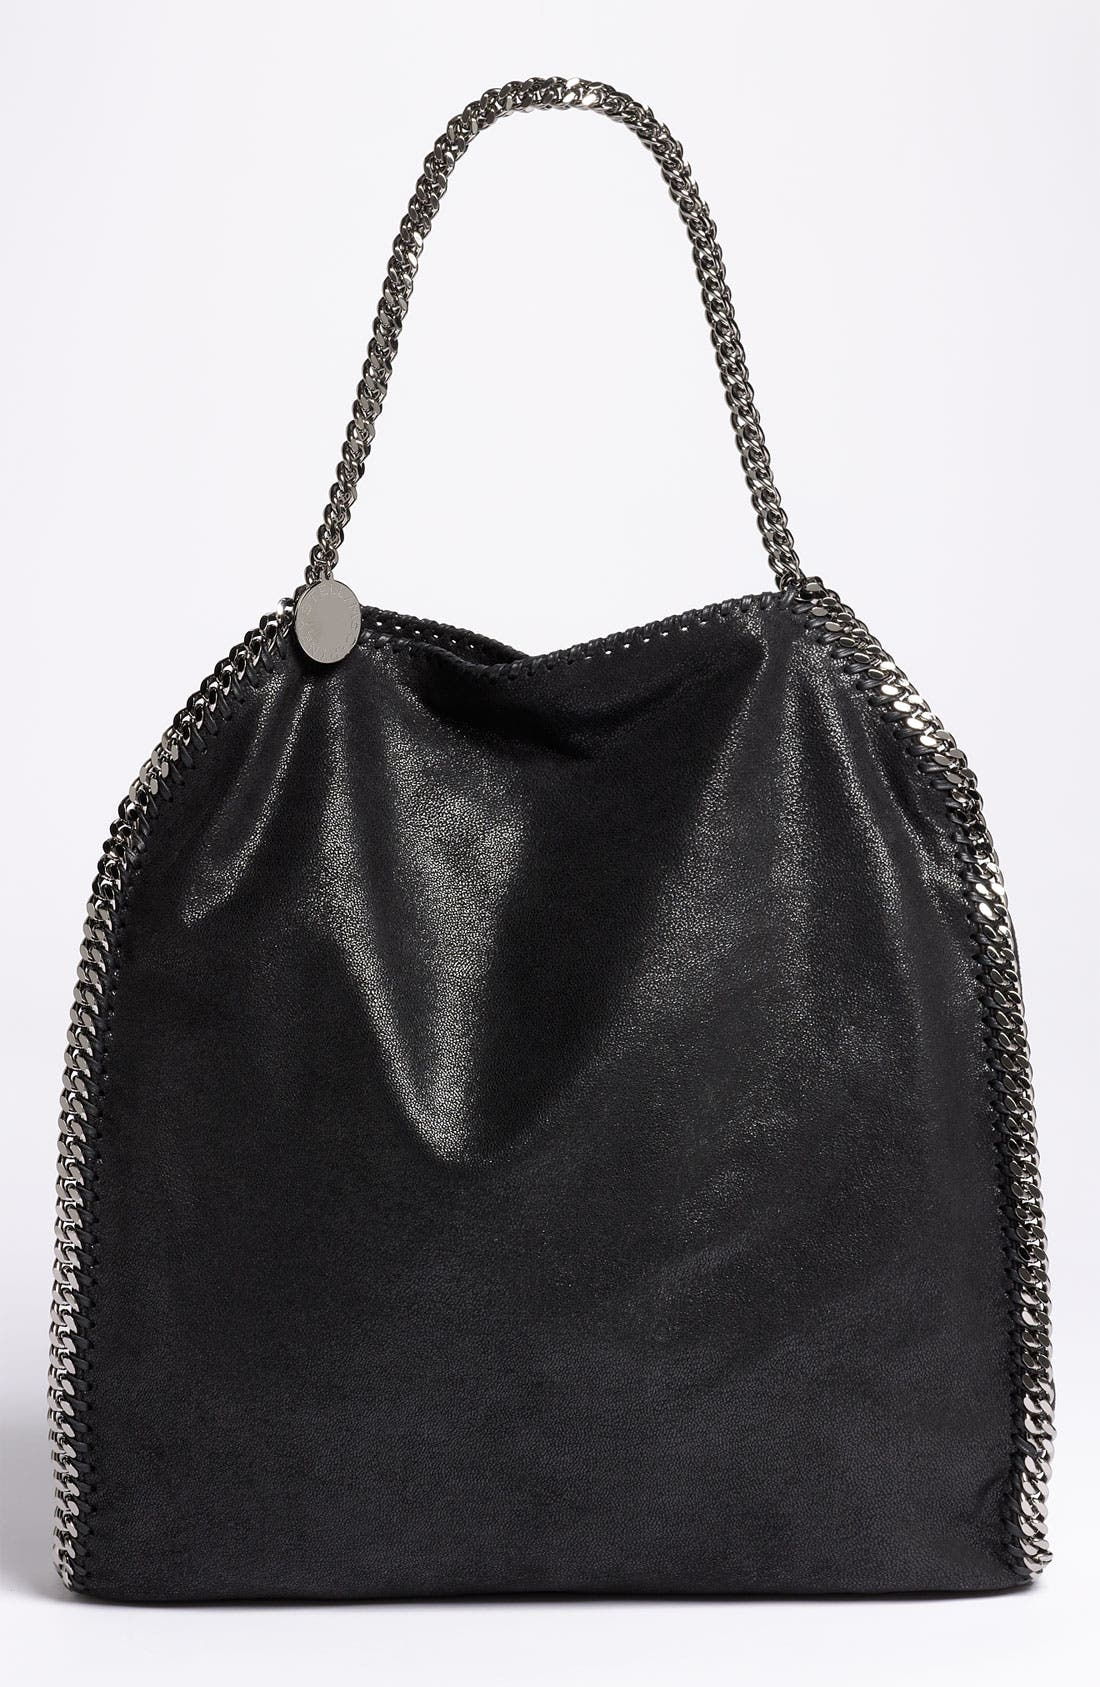 Alternate Image 1 Selected - Stella McCartney 'Large Falabella - Shaggy Deer' Faux Leather Tote